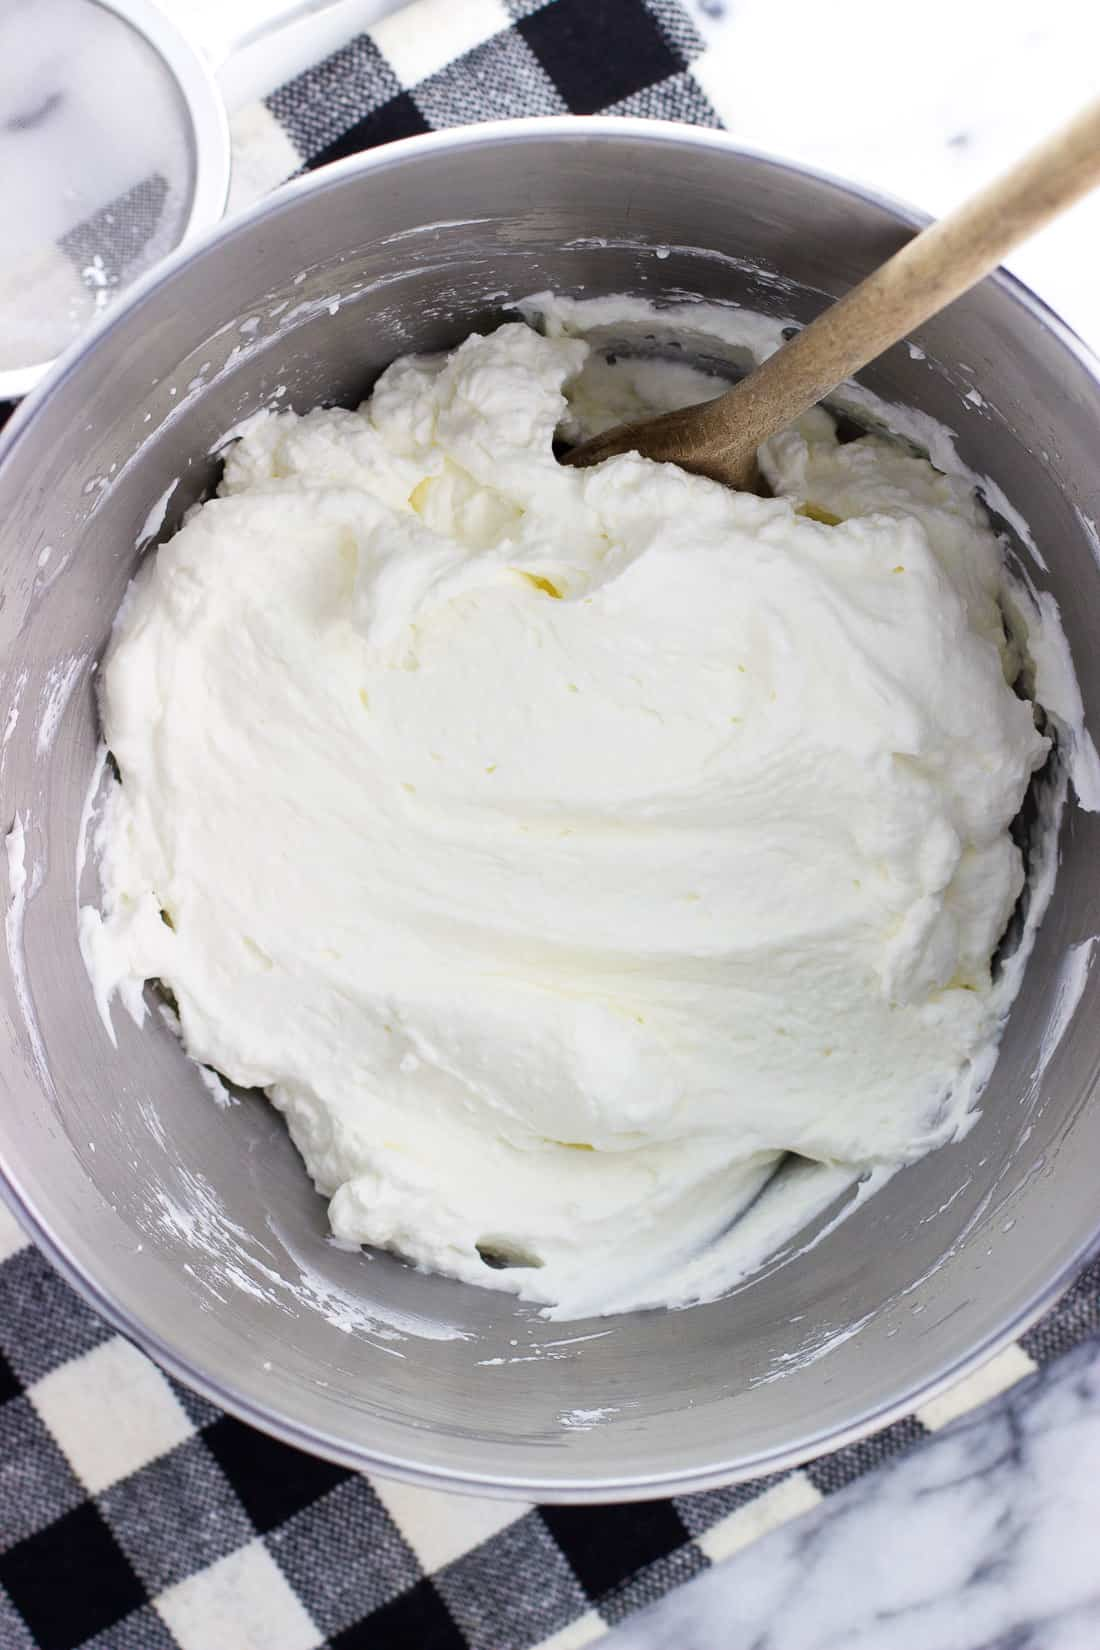 Stabilized whipped cream is so easy to make at home and makes a big difference in pies, trifles, and many more desserts. A quick extra step helps ensure leftover portions of recipes with whipped cream stay fluffy for days.